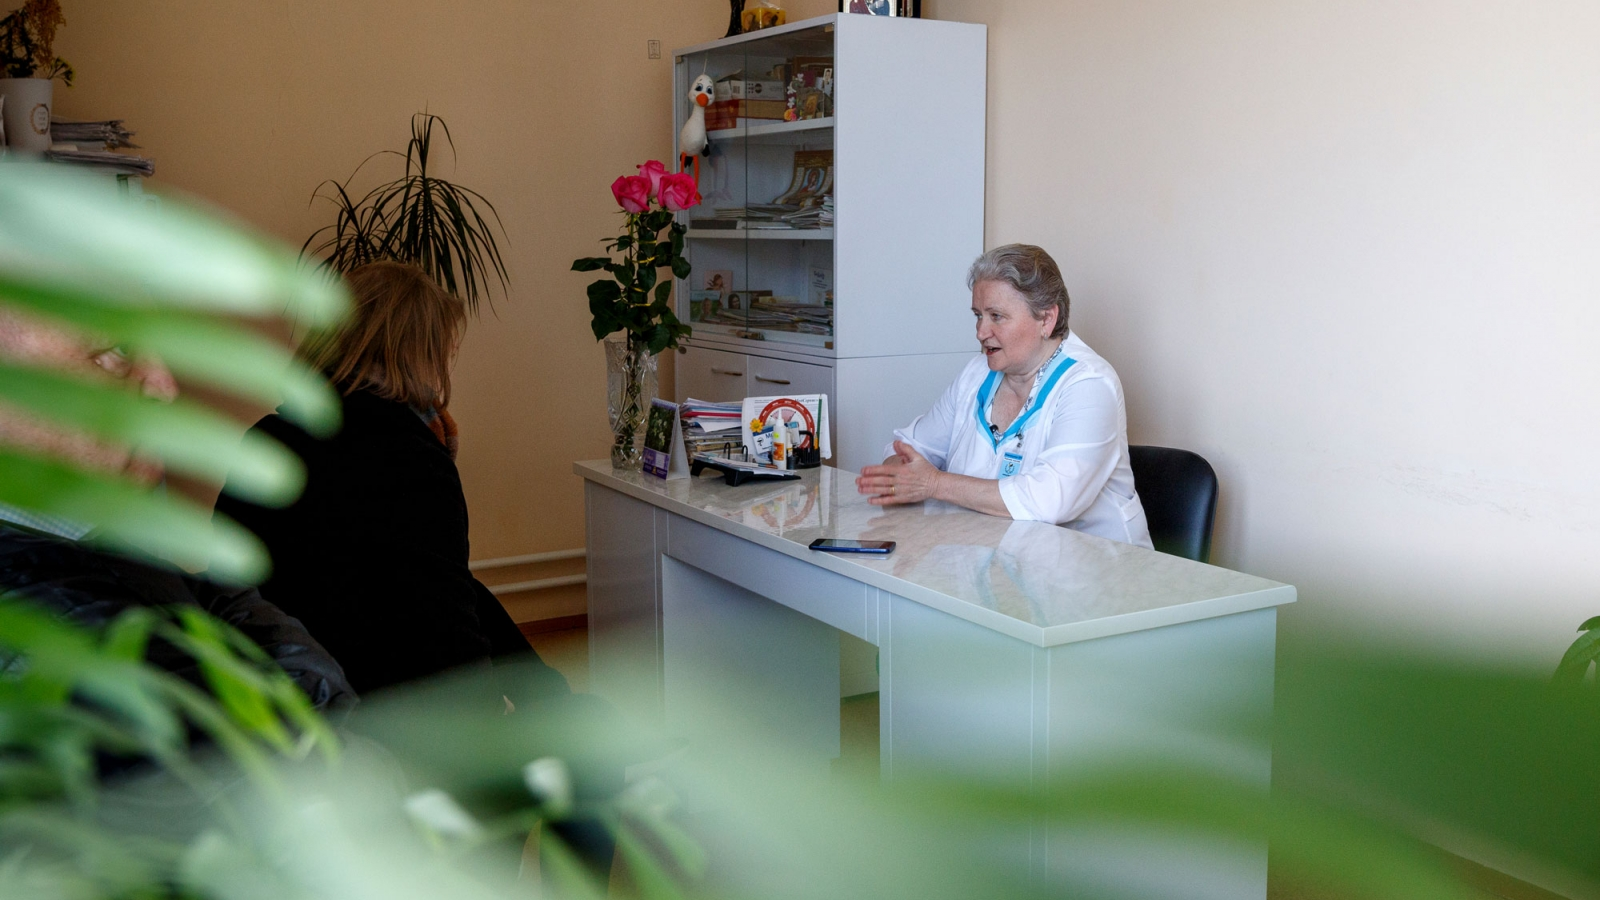 Tamara Mamuha, head of the maternity department, Navahrudak, Belarus